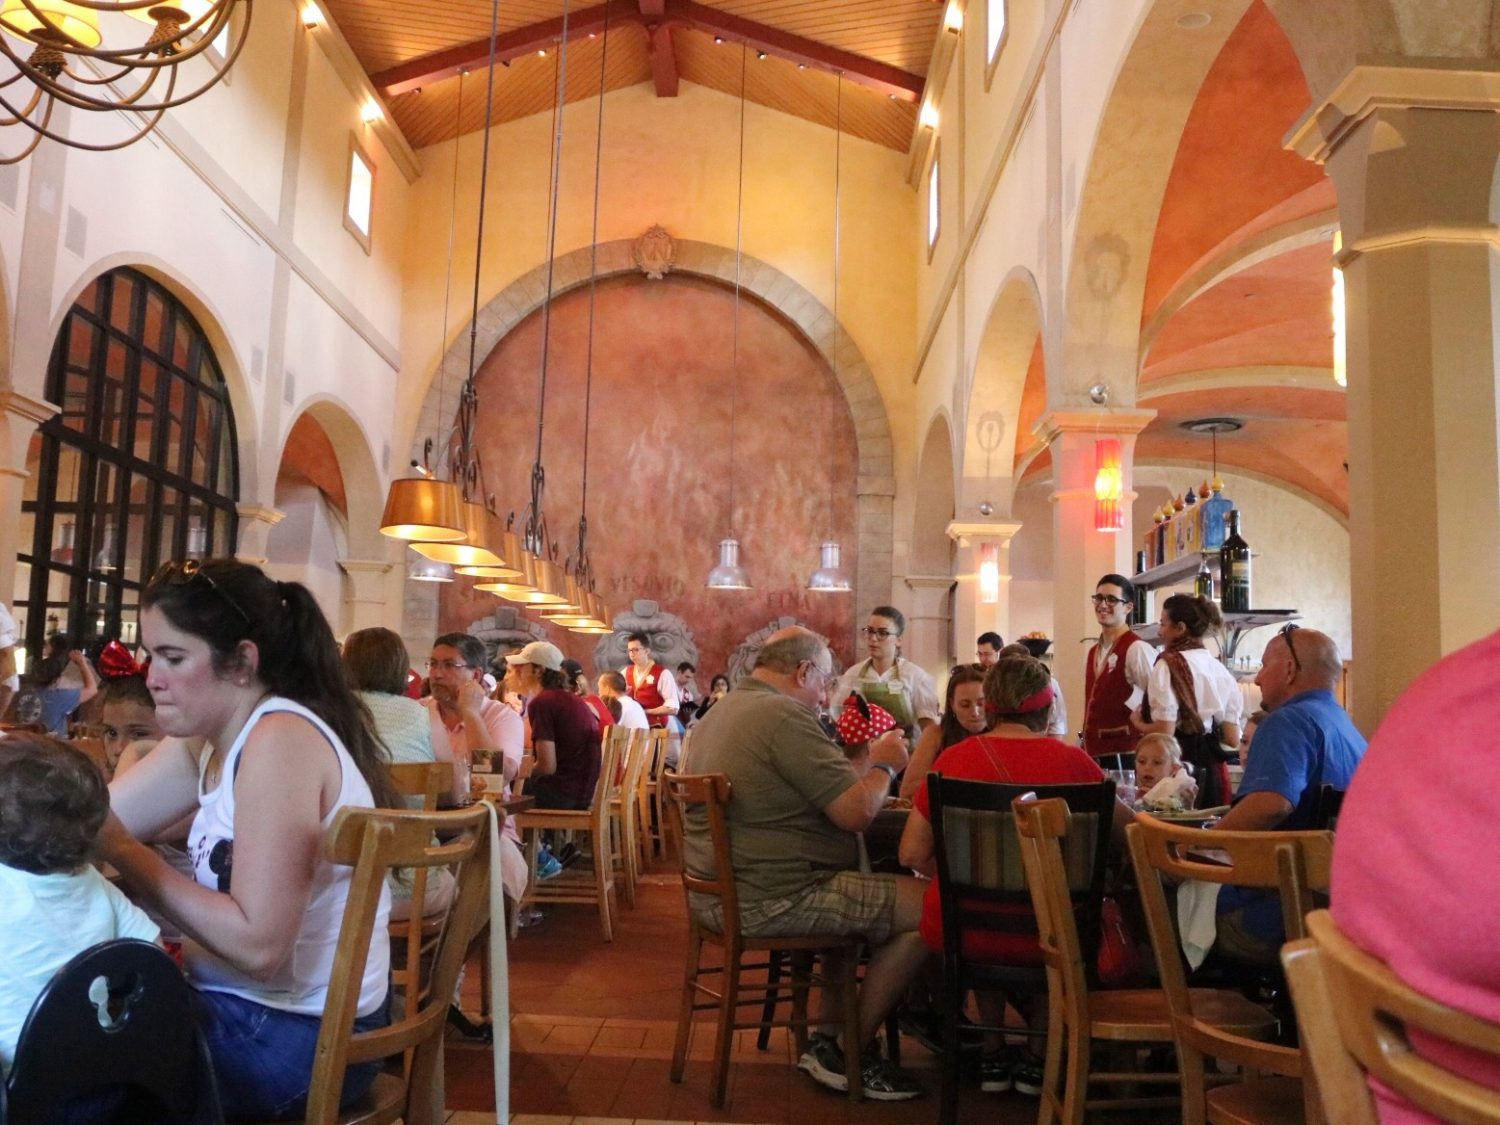 Via Napoli Ristorante e Pizzeria in Epcot at Walt Disney World